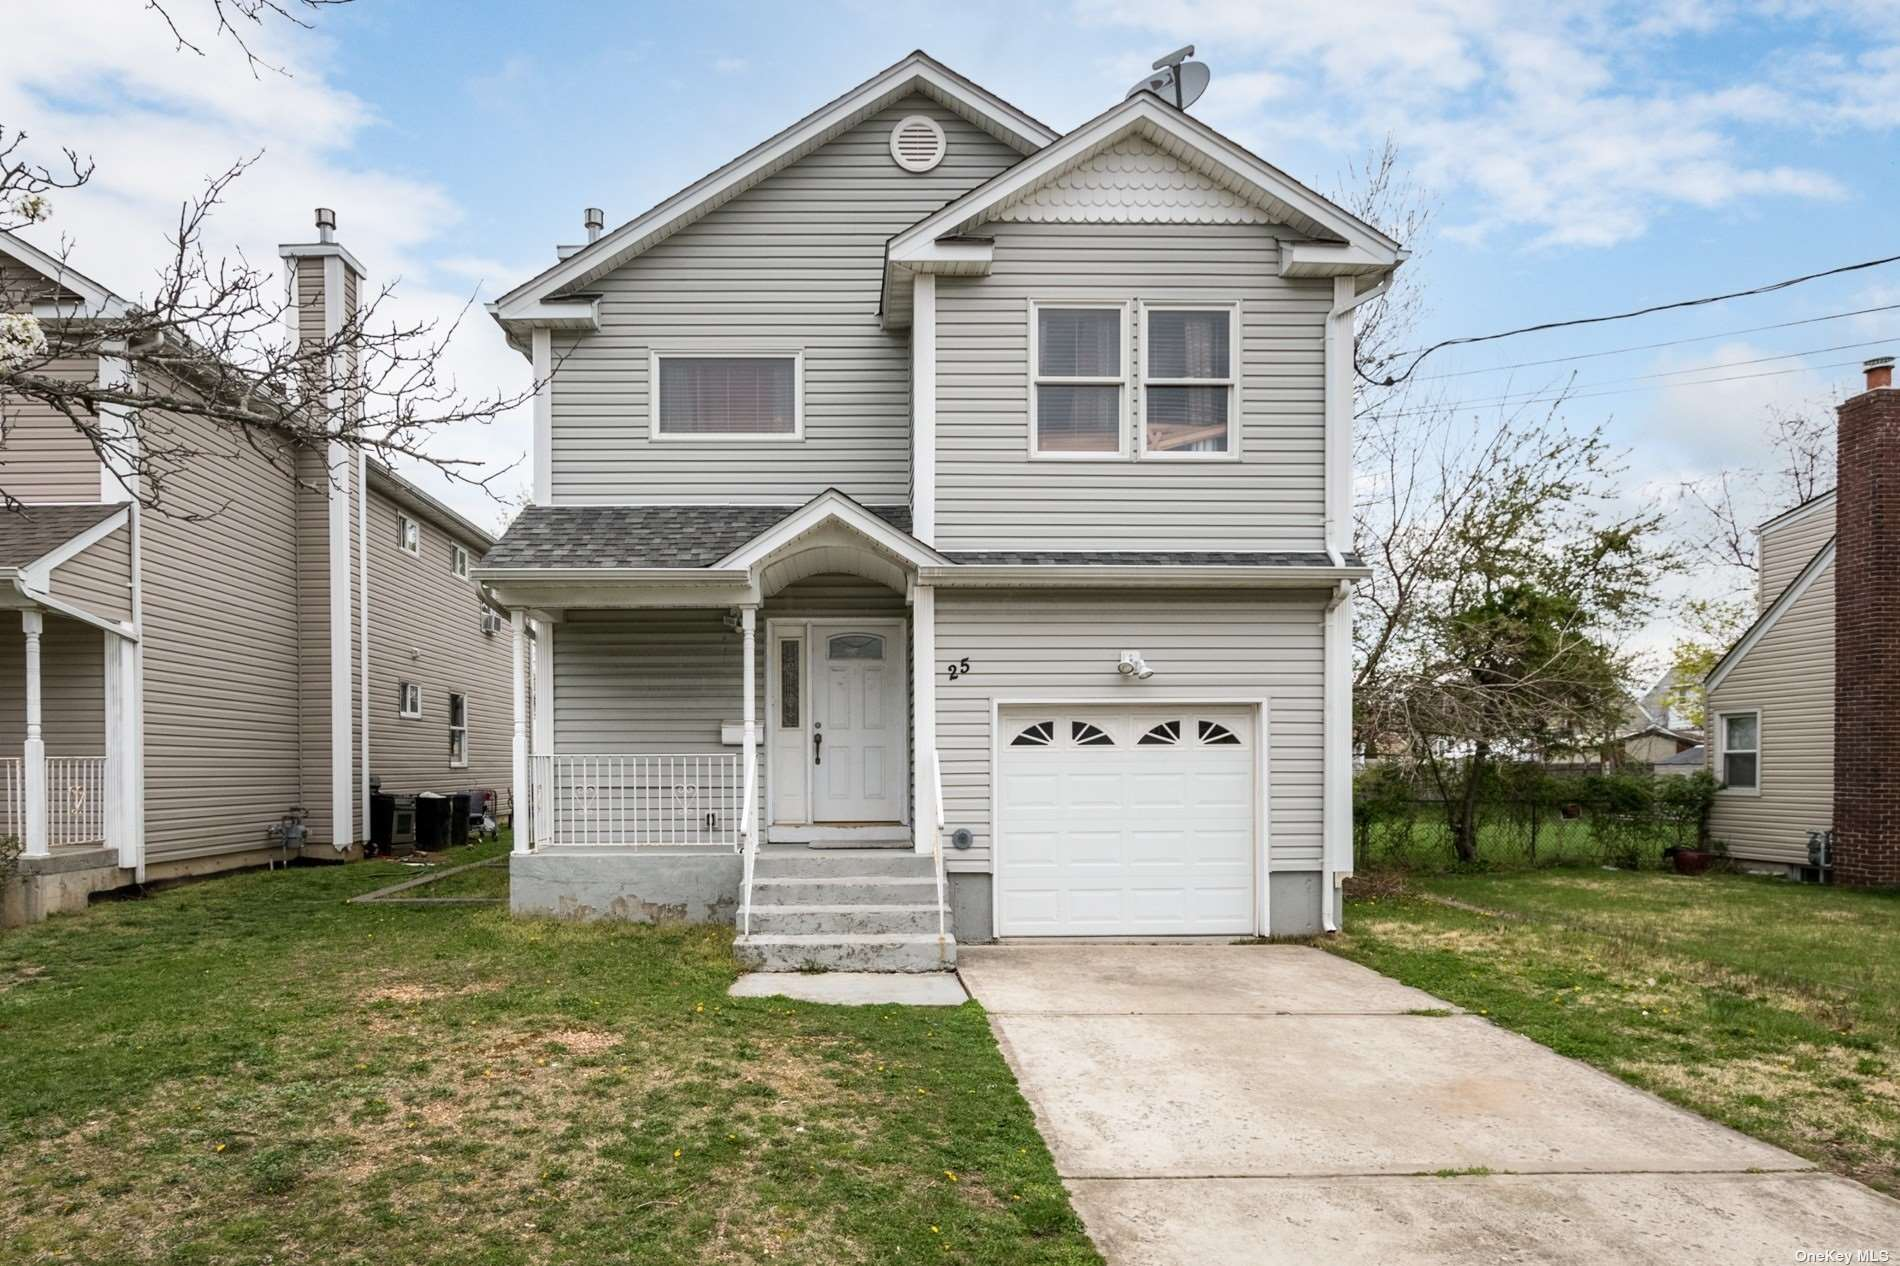 Spacious Hi - Ranch , with Full Basement with Outside Entrance.  5 Bedroom, 3 Bath home. Taxes do not reflect Star of Approximate $1500. Possible Mother/Daughter with proper permits.